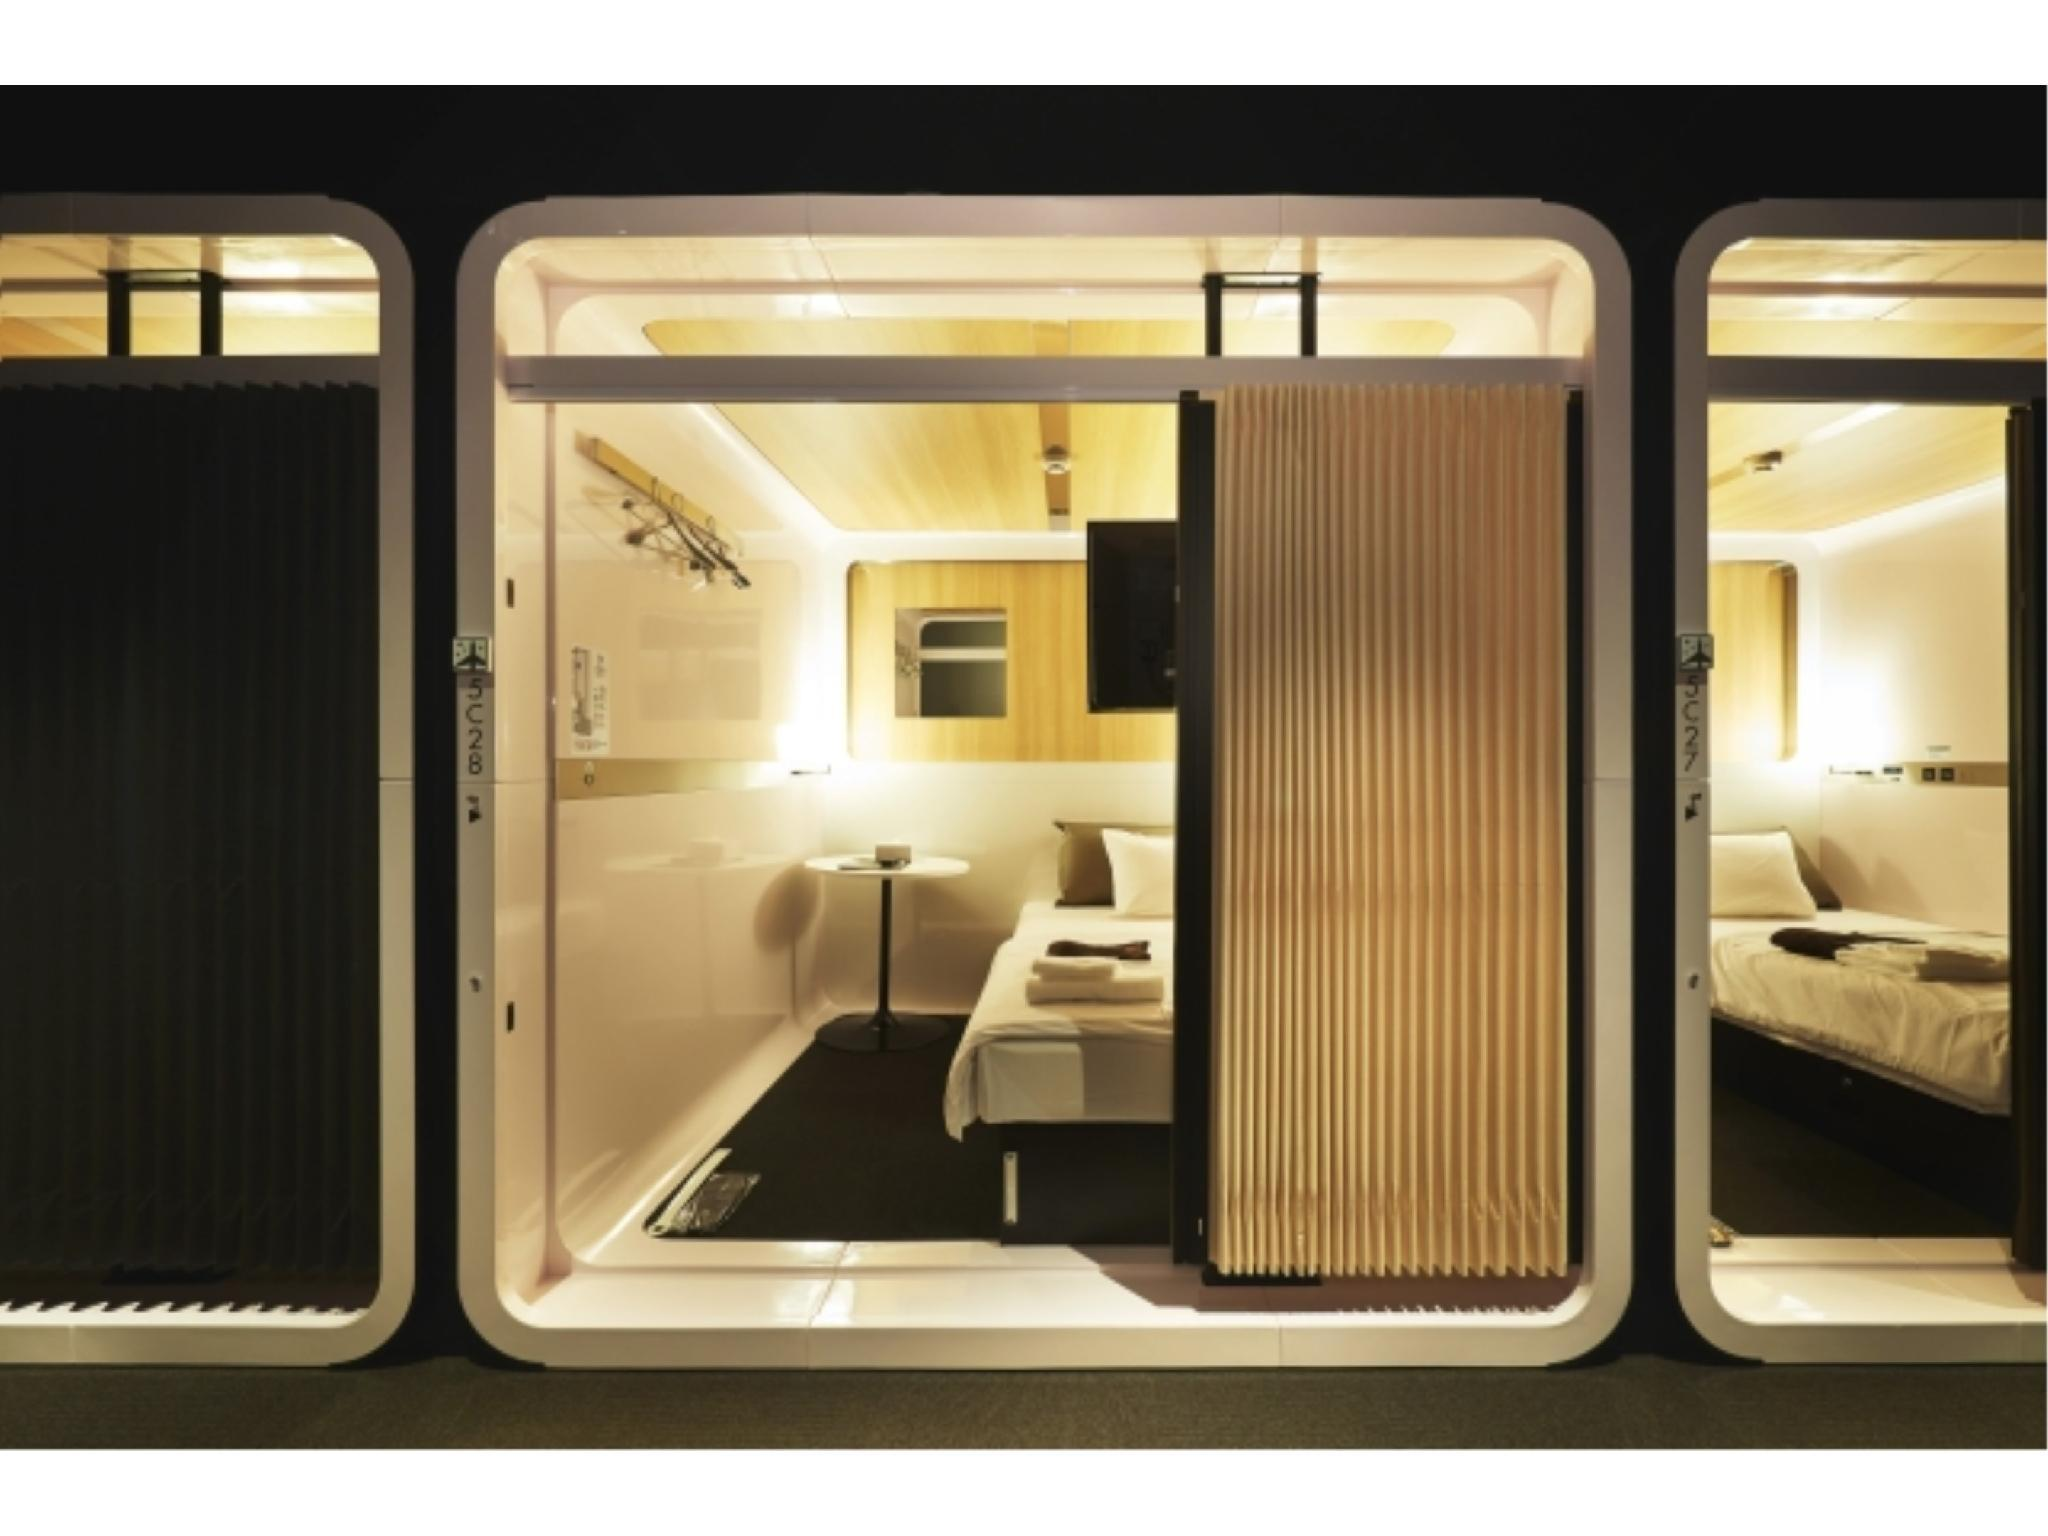 男士头等客舱房 (Men's First Class Cabin Room)